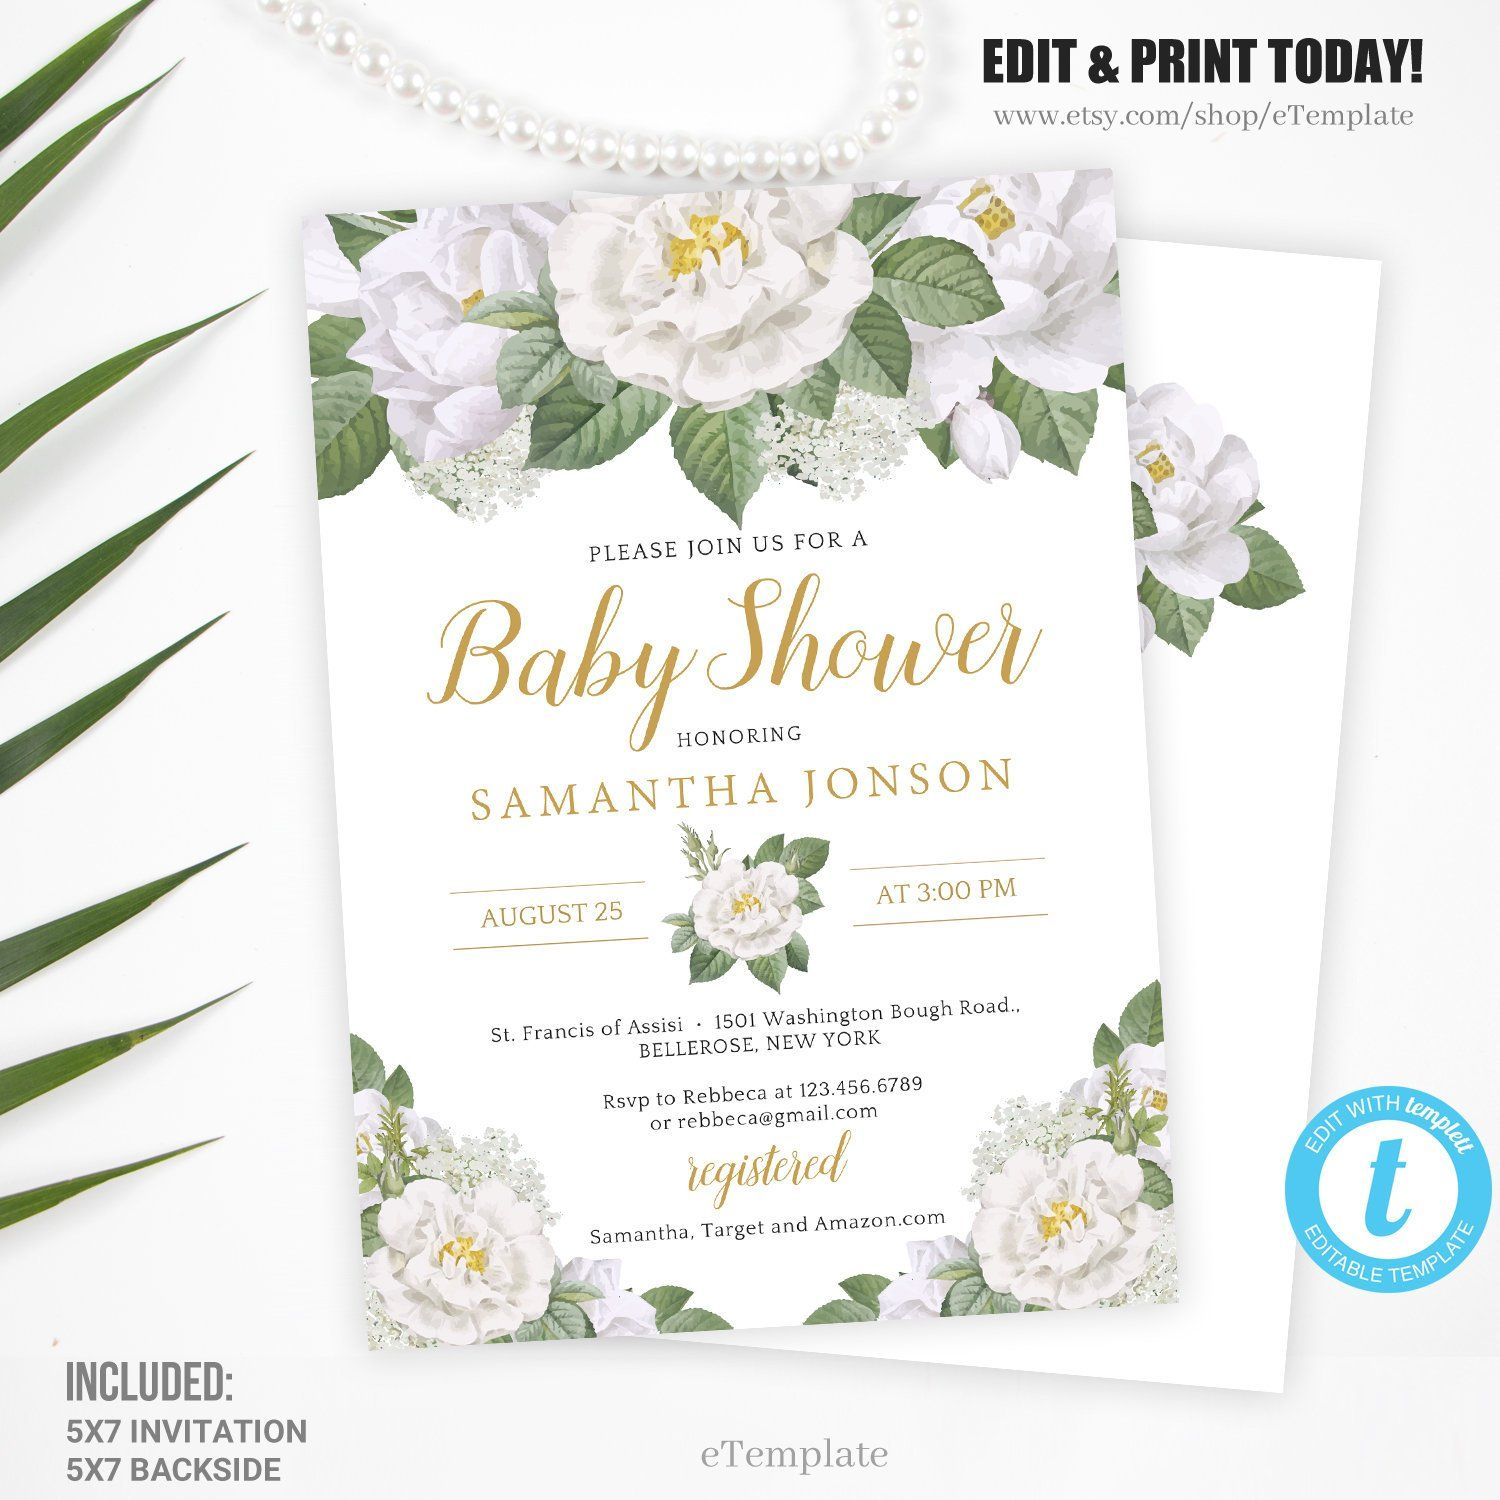 greenery baby shower invitation  editable floral baby shower invite  printable template  green